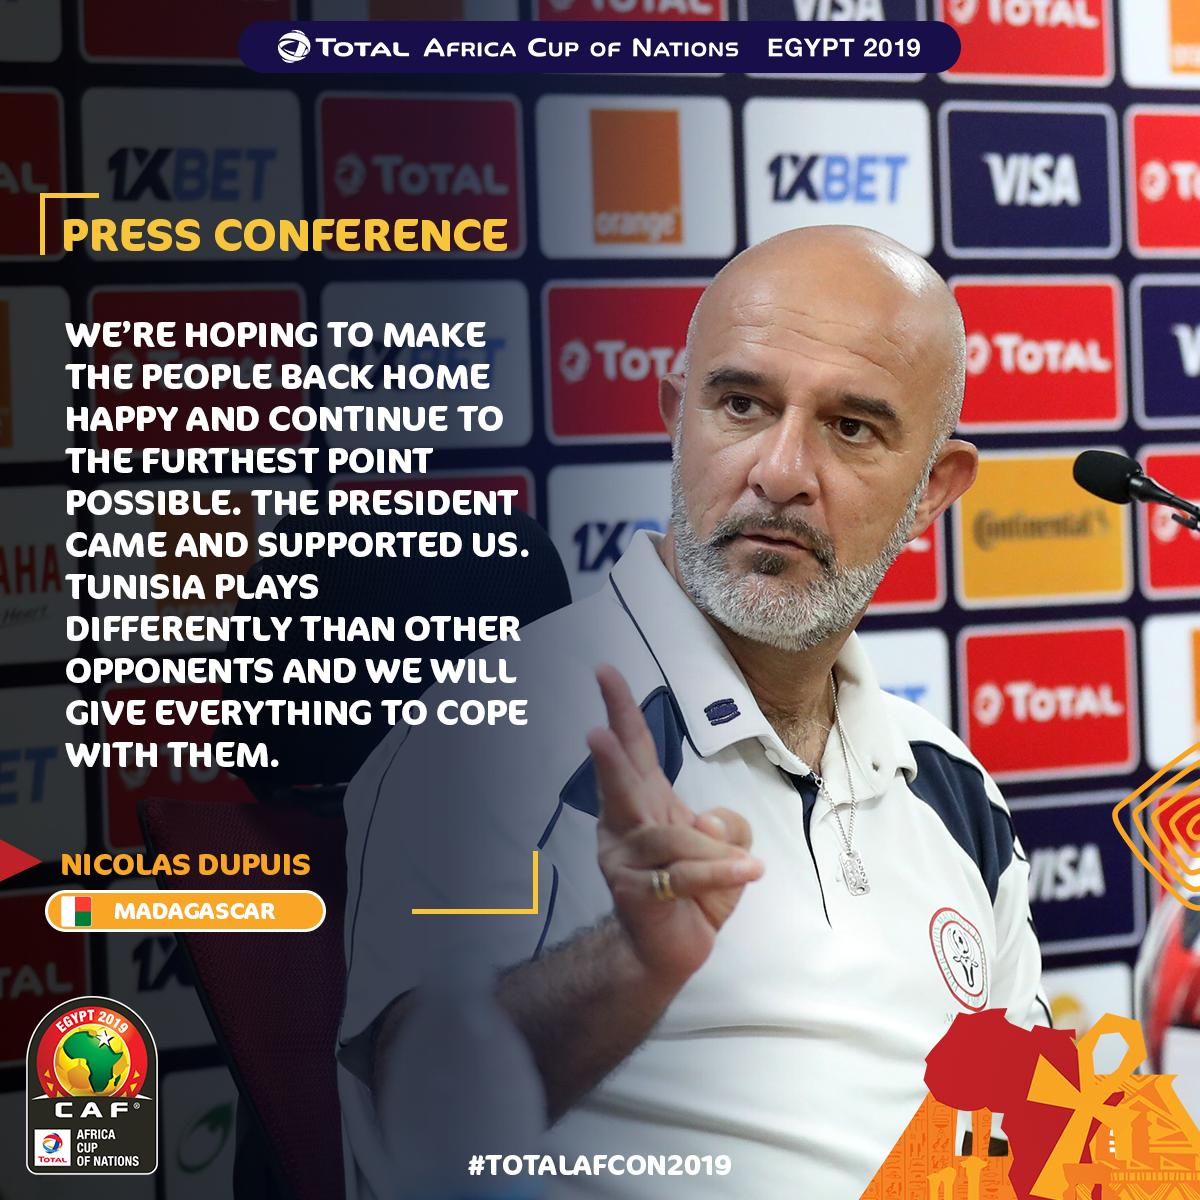 #ALEFABAREA has a message for the people back home   #TotalAFCON2019<br>http://pic.twitter.com/HTd1et9Aen